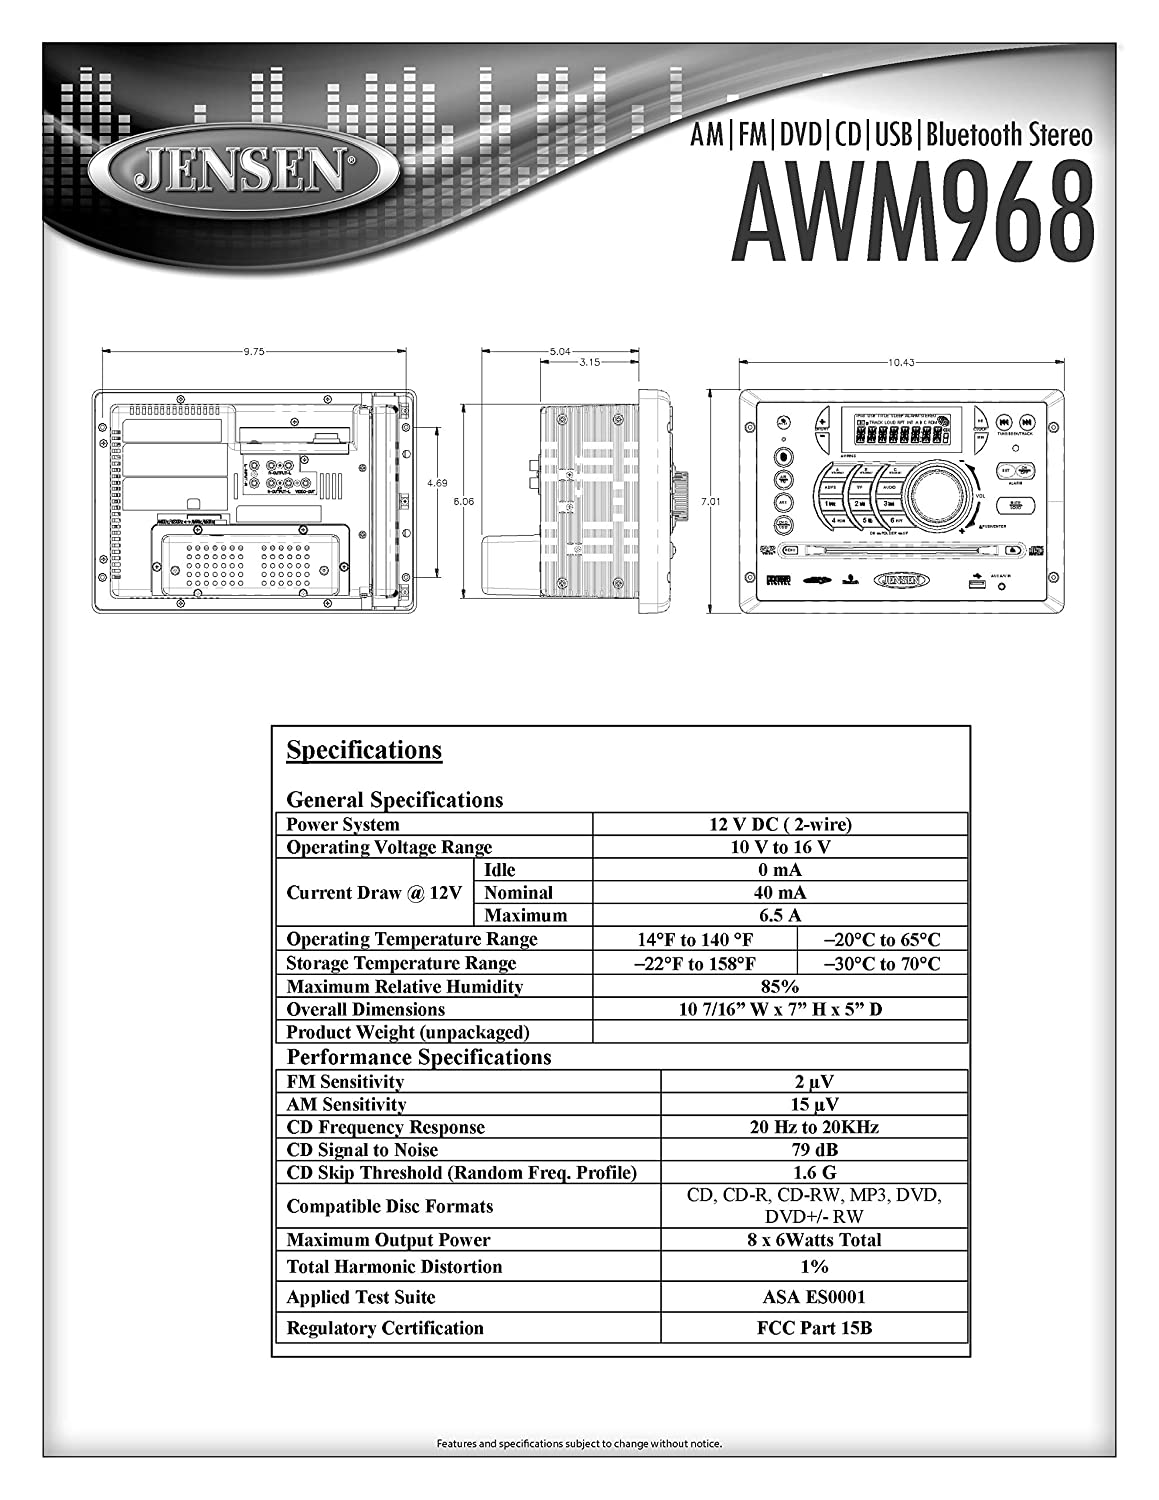 Jensen Awm968 Am Fm Cd Dvd Usb Bluetooth Stereo Front 7 Pin Travel Trailer Wiring Diagram Supports Mp3 Wma Player R Rw